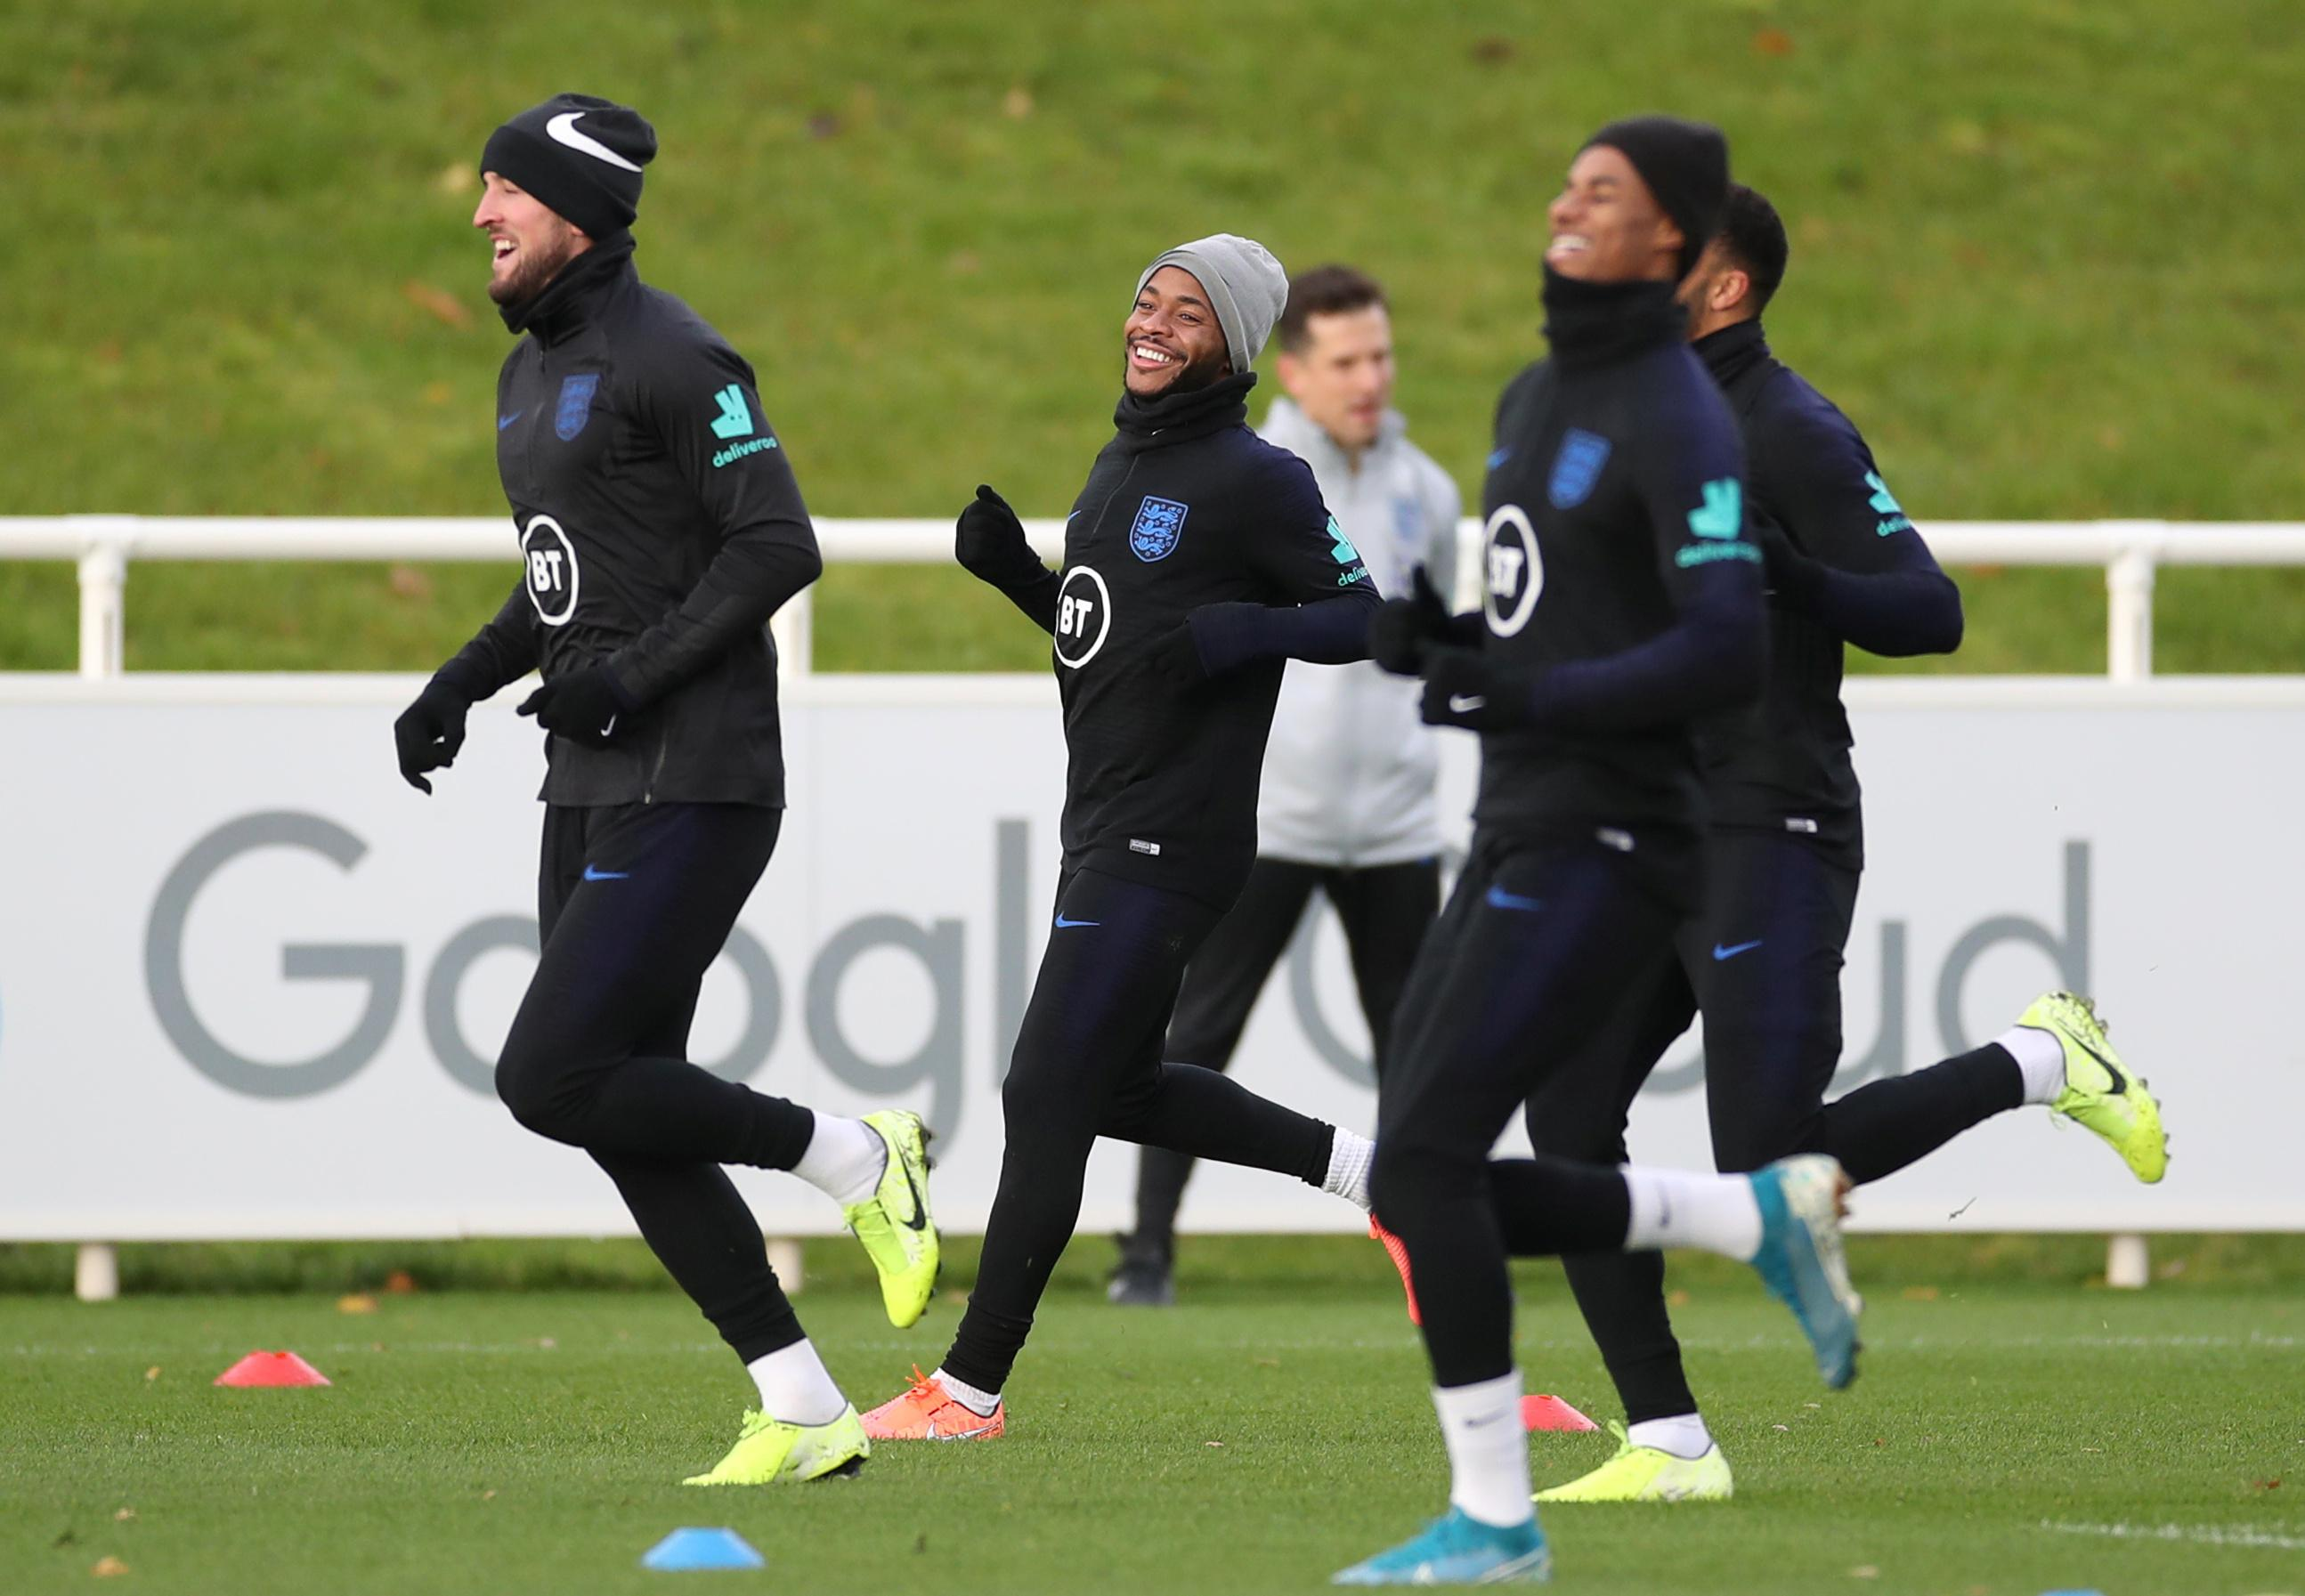 Sterling is my idol and England leader, says Hudson-Odoi